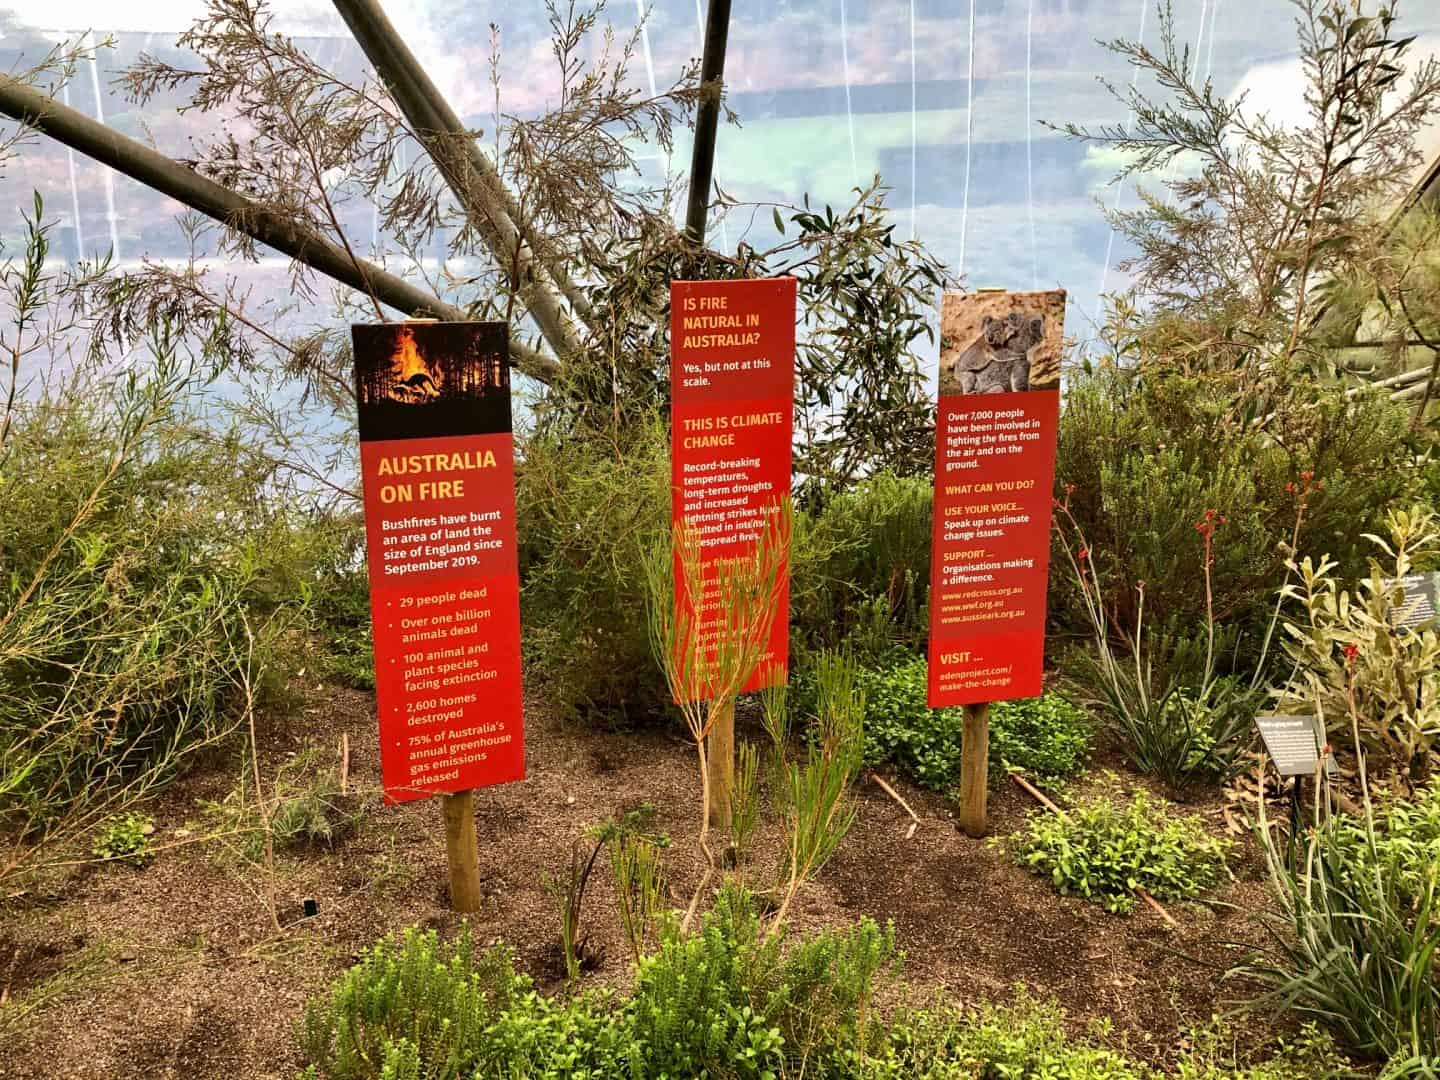 Australia on Fire - Eden Project